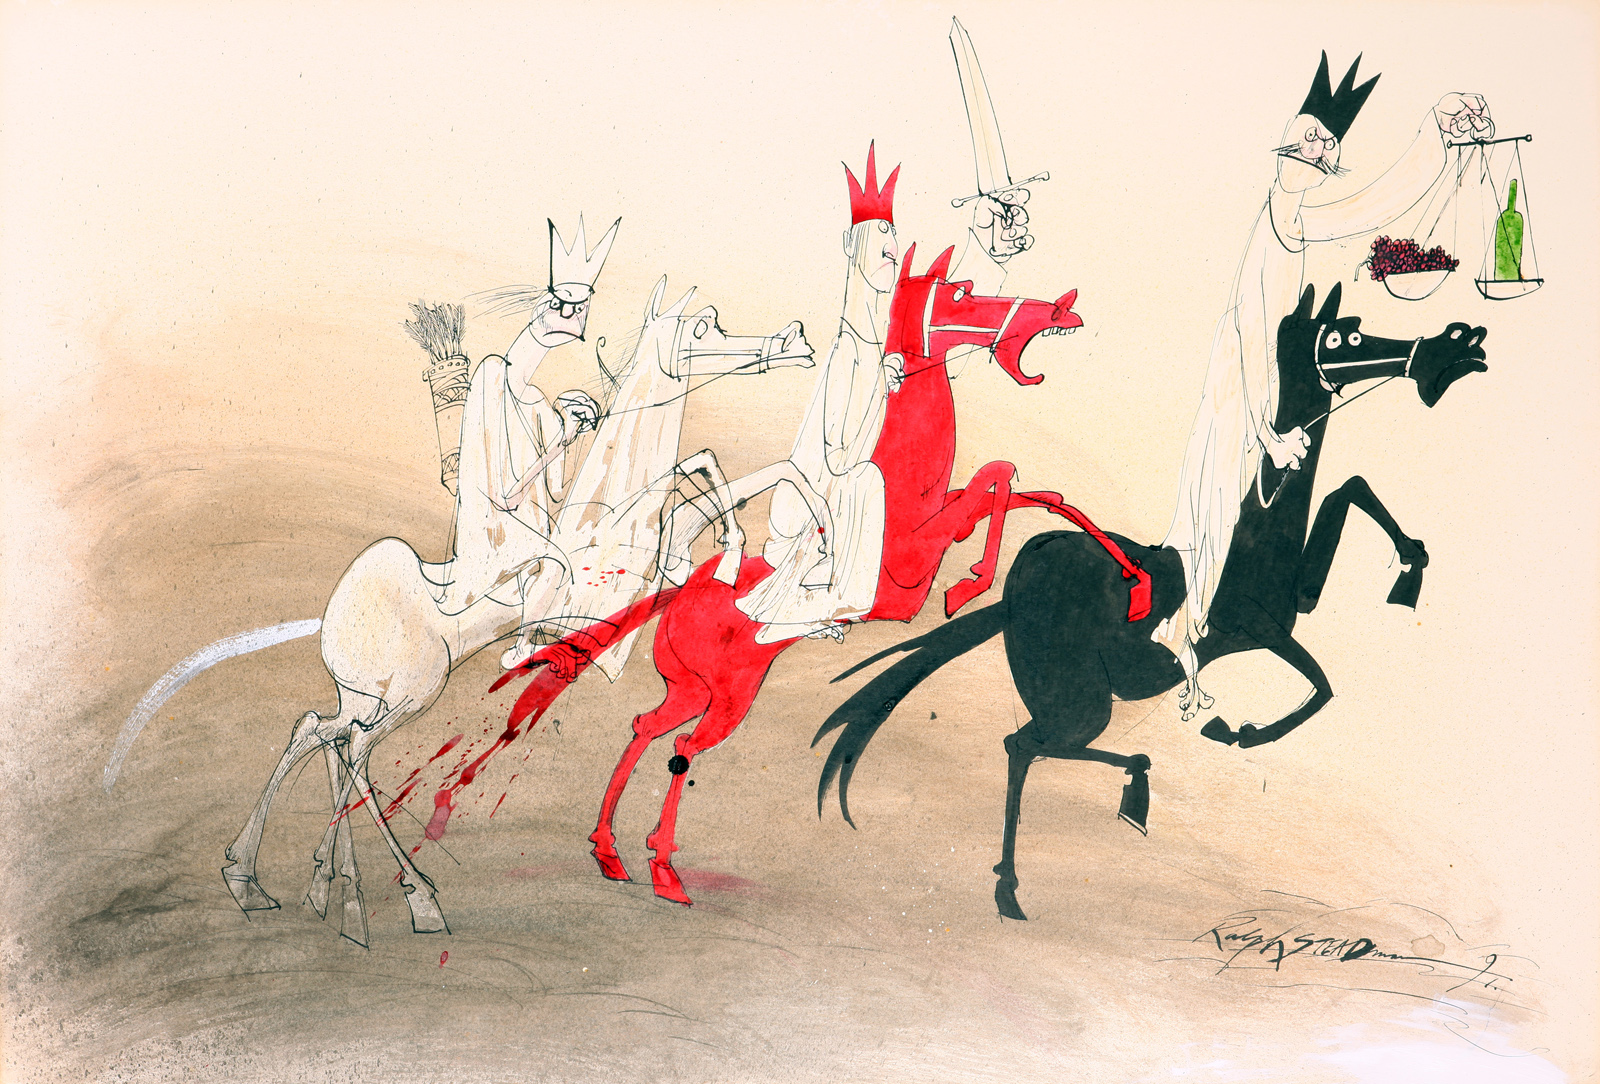 Image of teh 4 Horsemen of the Apocalyse by Ralph Steadman for Oddbins the wine merchants